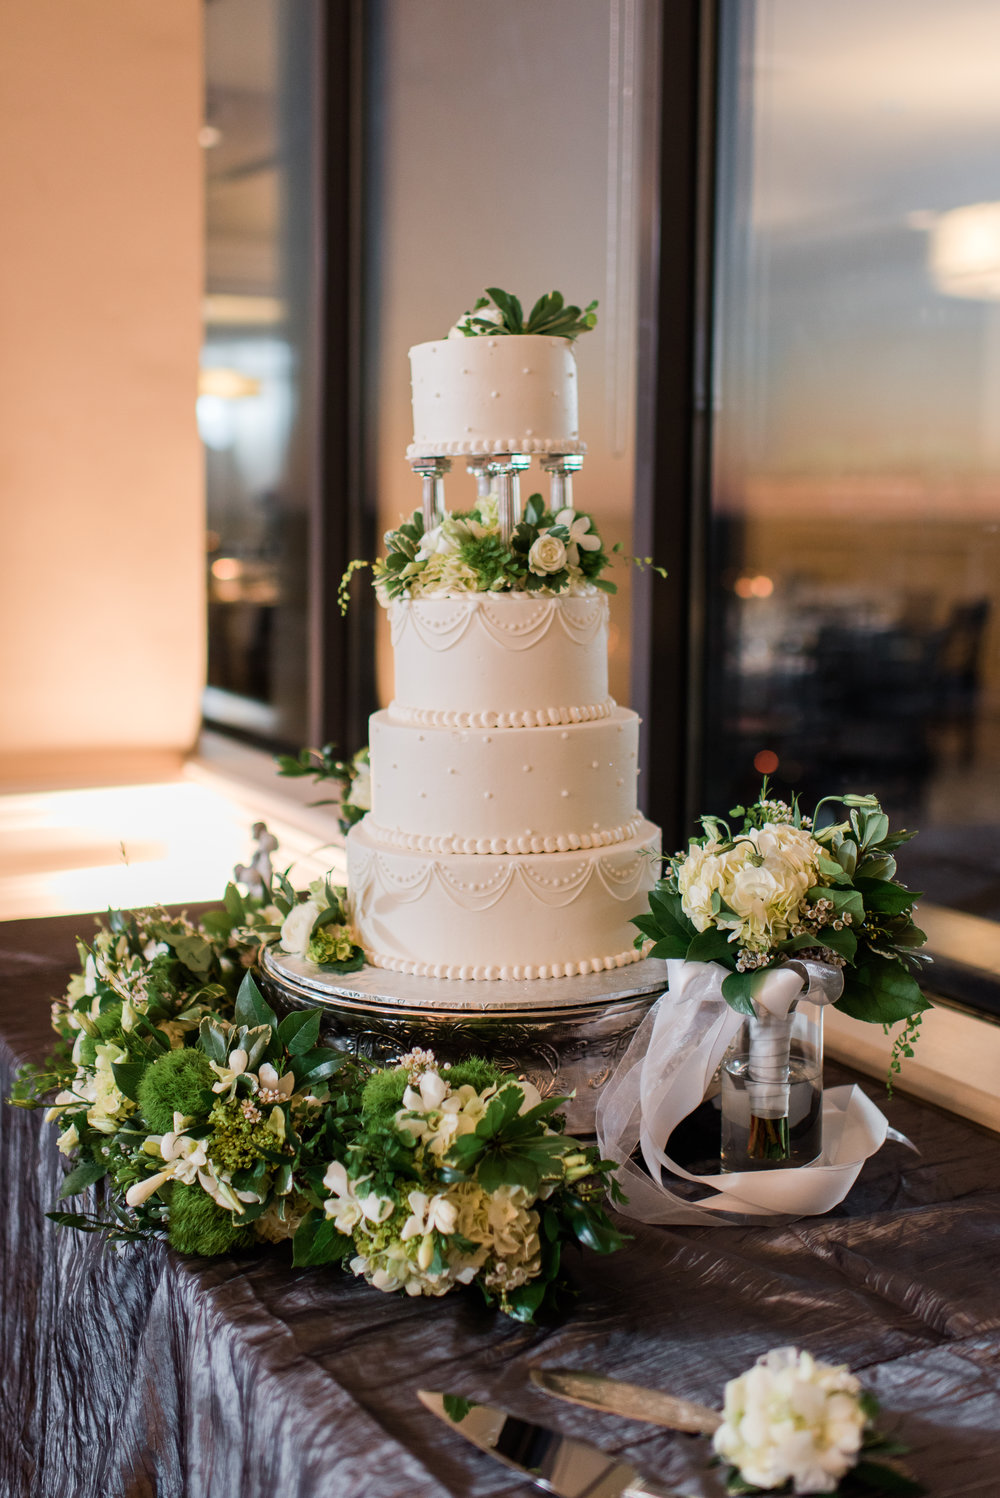 White Wedding Cake - A Black Tie, South Carolina Commerce Club Wedding